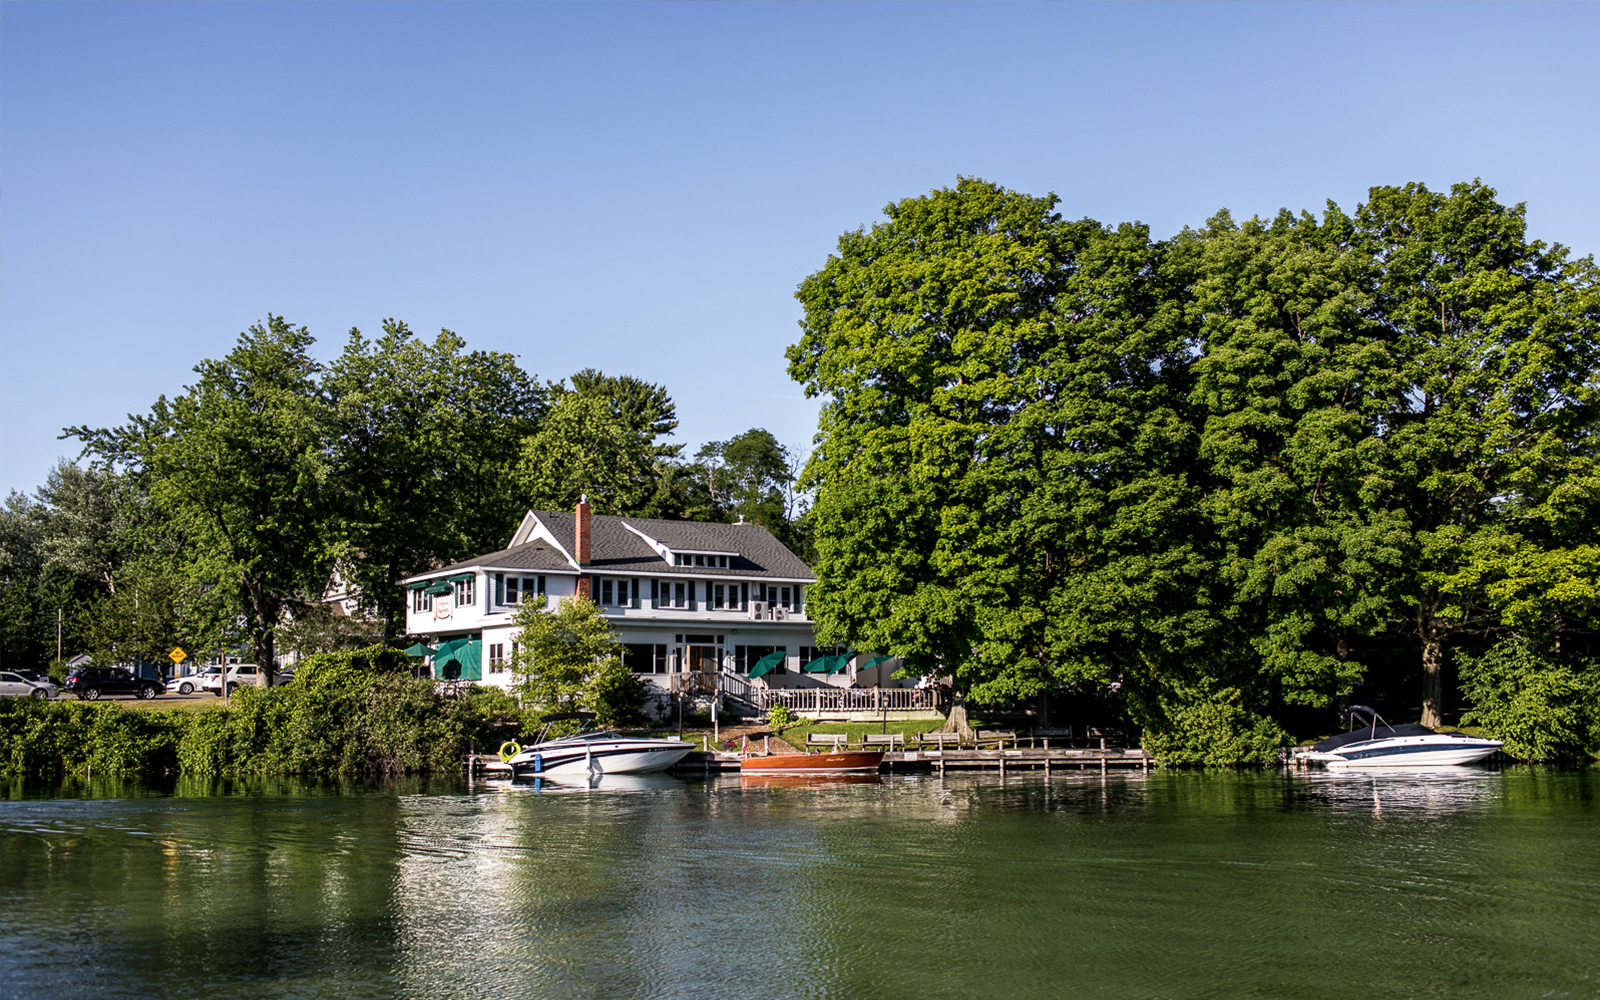 The Riverside Inn in Leland, Michigan. The best places to visit in Leelanau County.